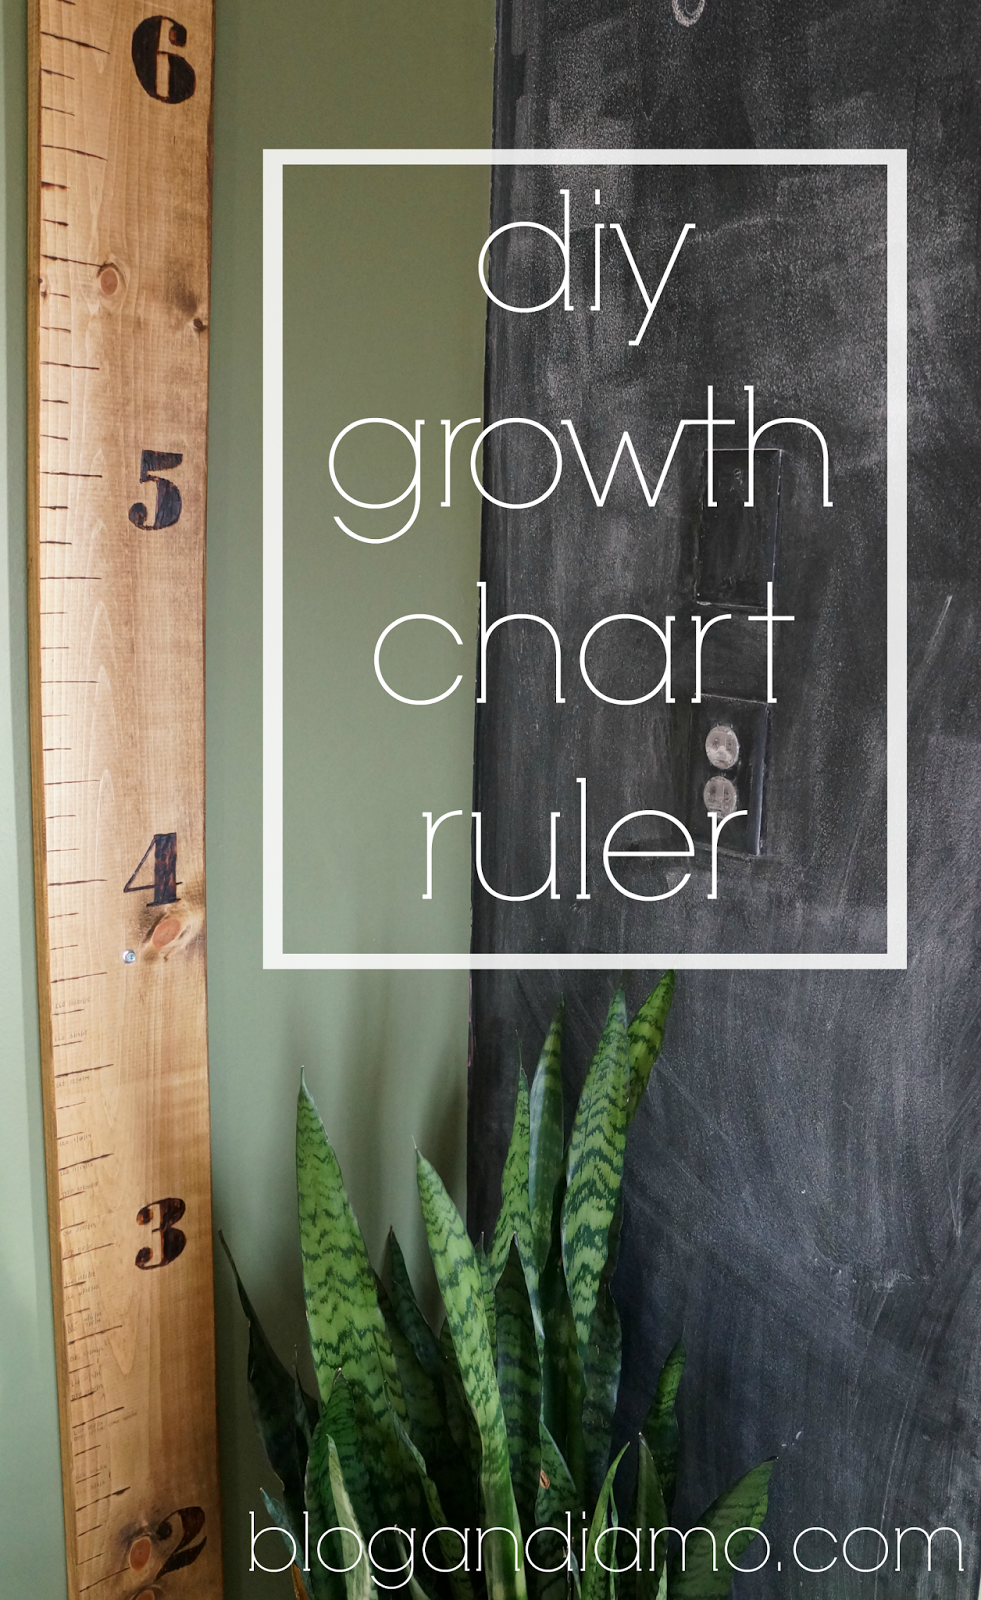 Diy growth chart ruler andiamo diy growth chart ruler 11102015 i get these ideas you see and then i just run with them and i dont stop until its done like this ruler business nvjuhfo Gallery